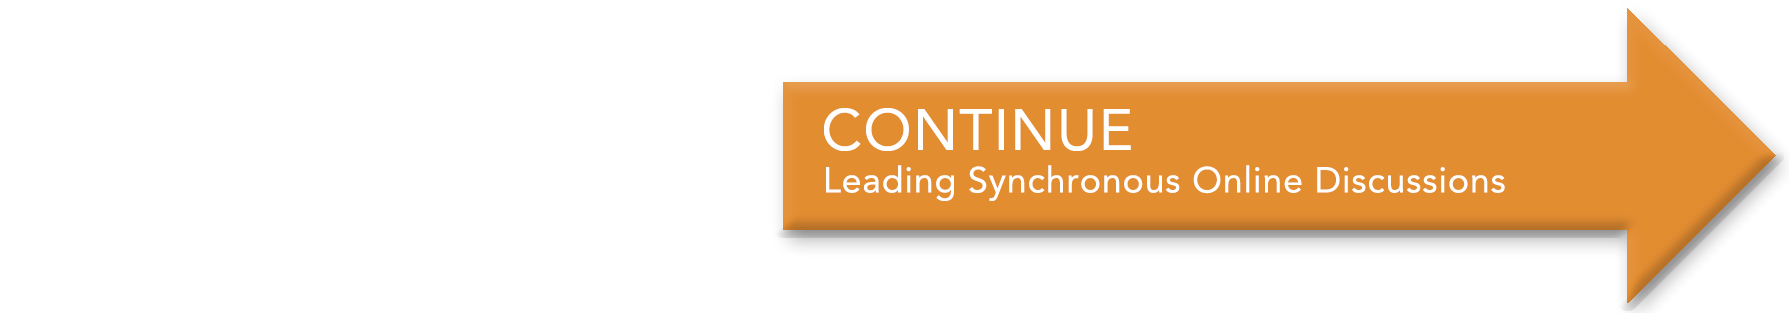 Continue to Leading Synchronous Online Discussions